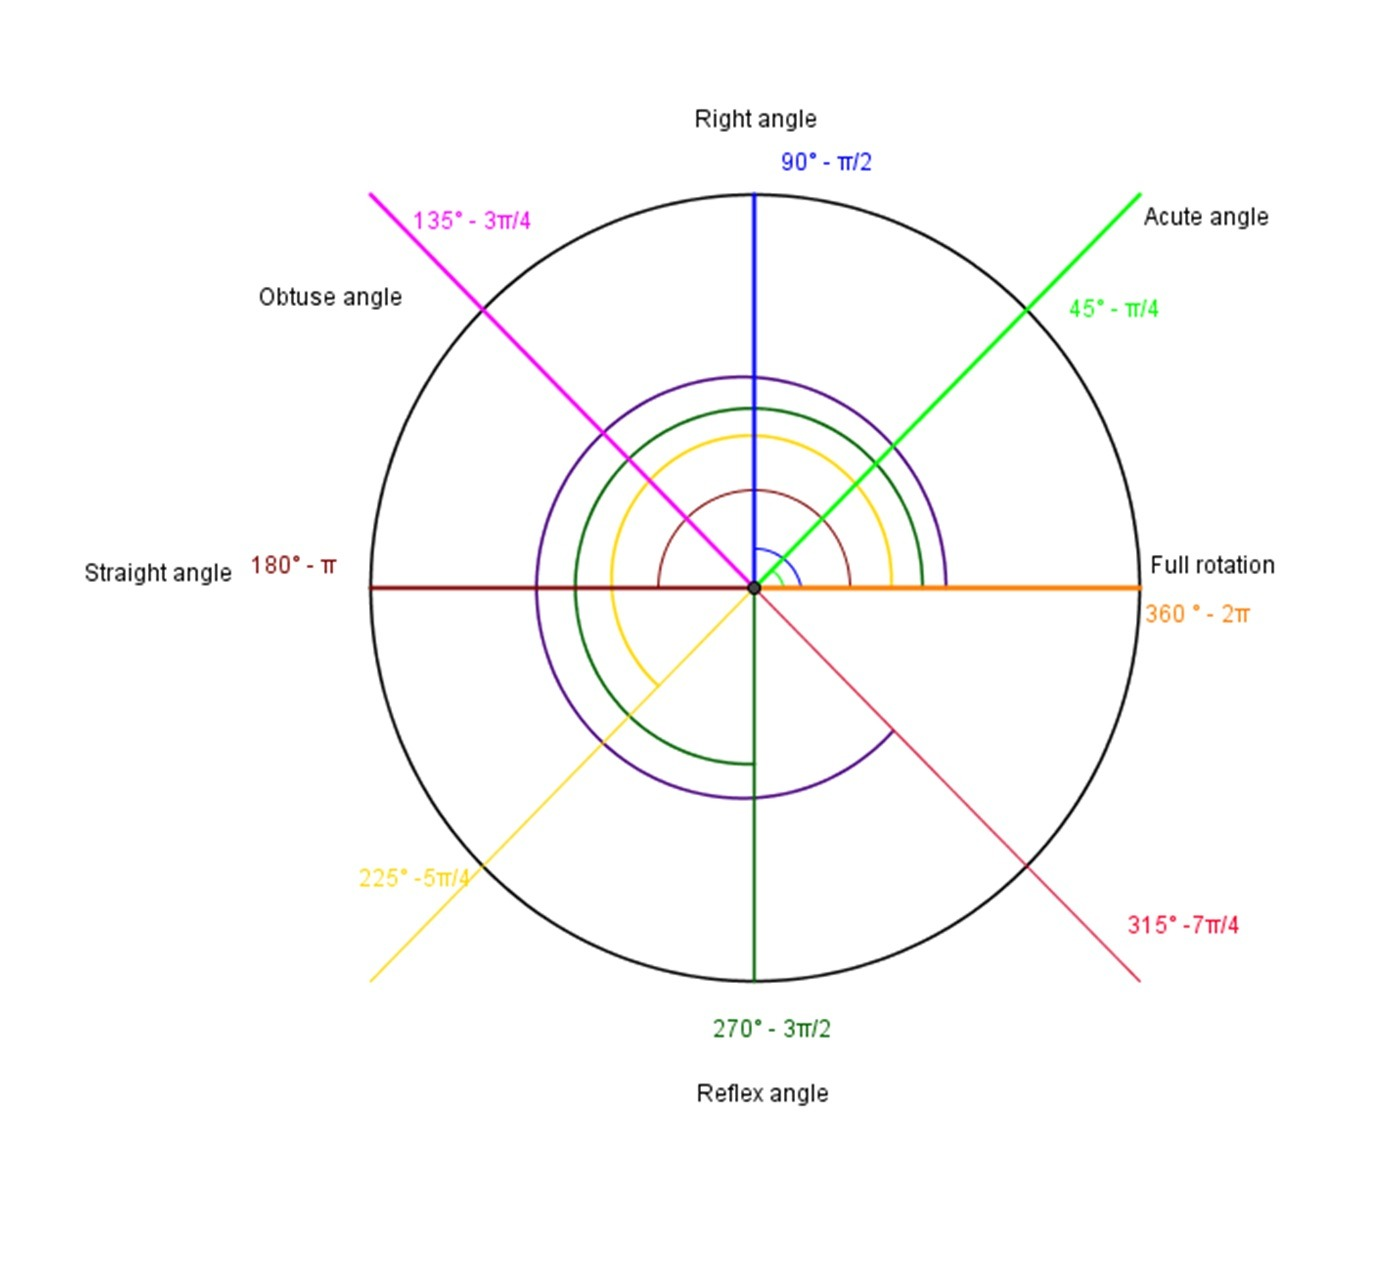 Angles Measured In Radians